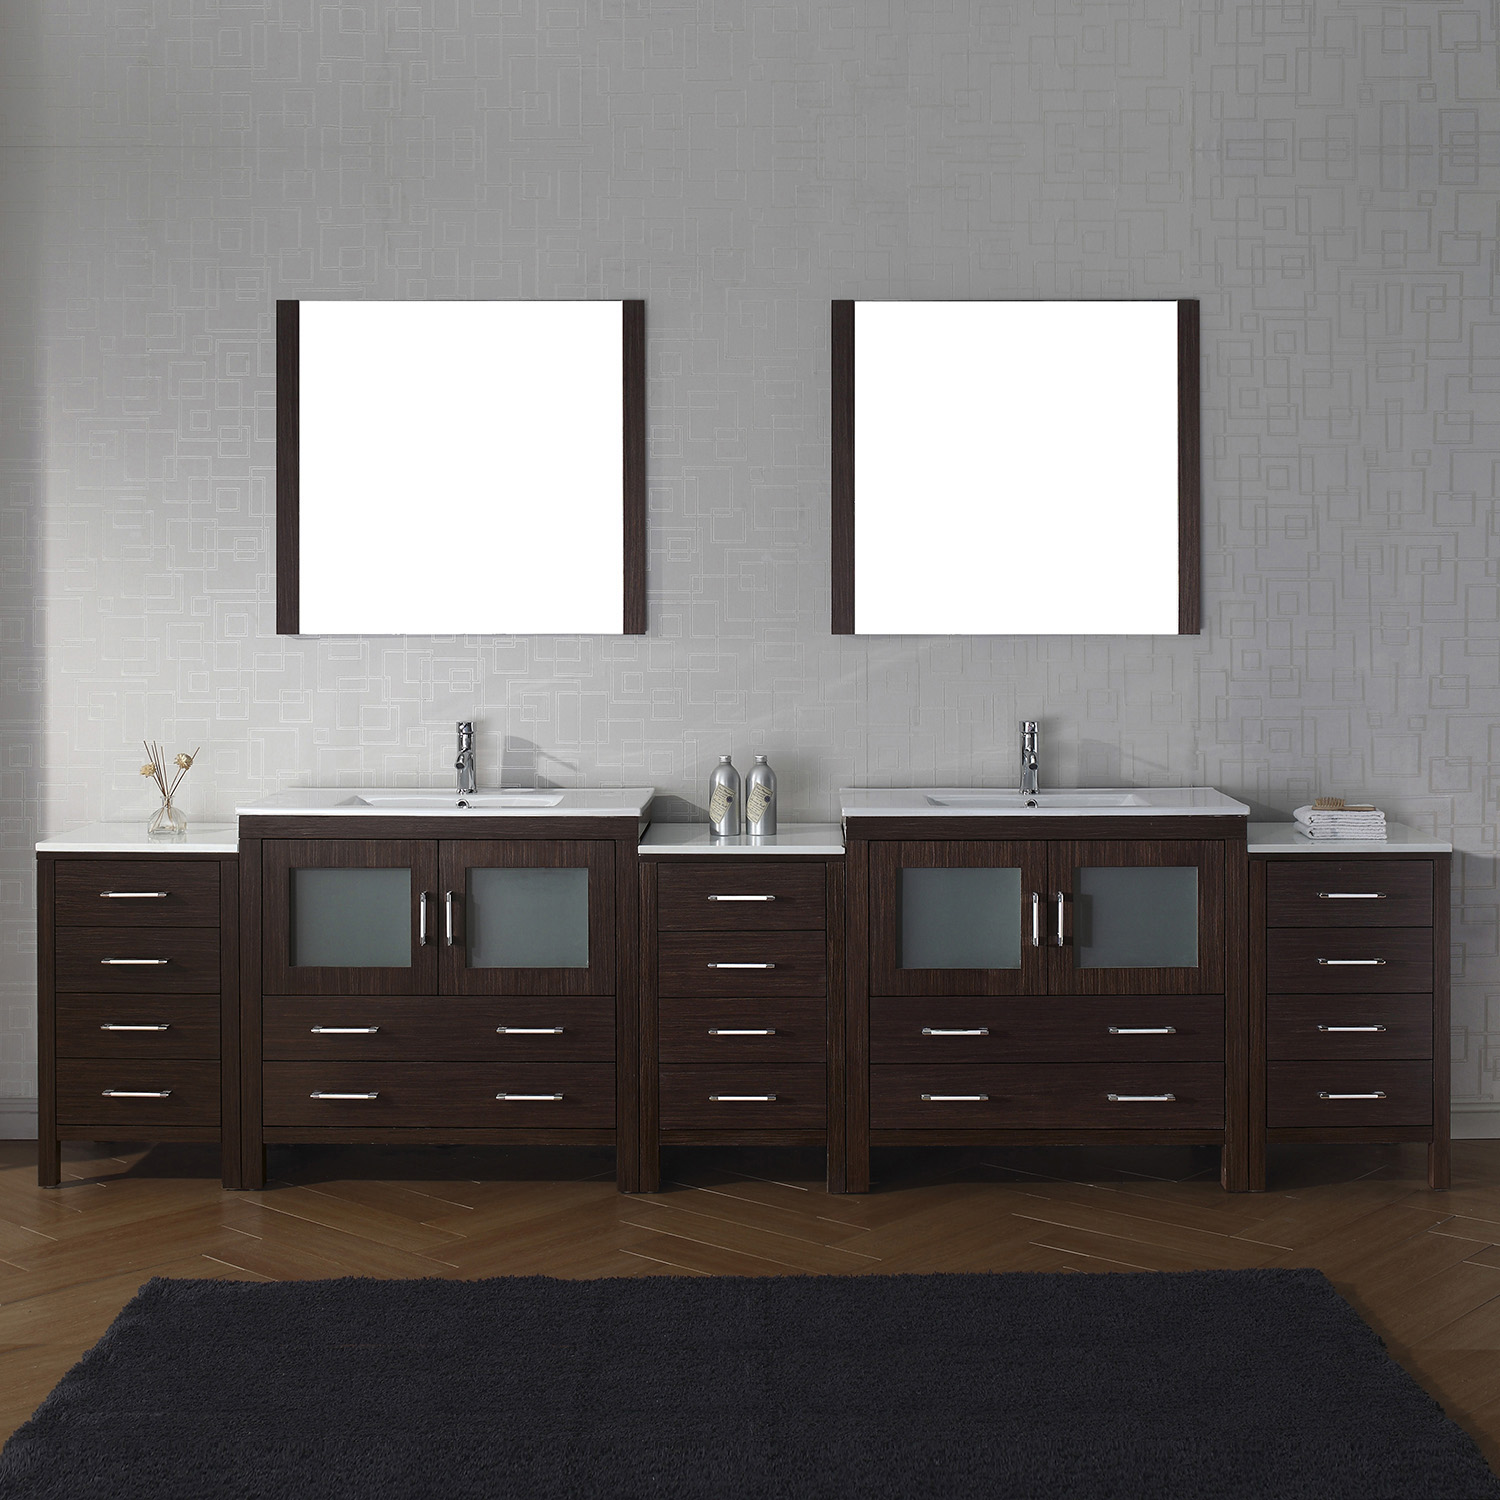 "118"" Double Bath Vanity in Espresso with Slim White Ceramic Top and Square Sink with Polished Chrome Faucet and Mirrors"